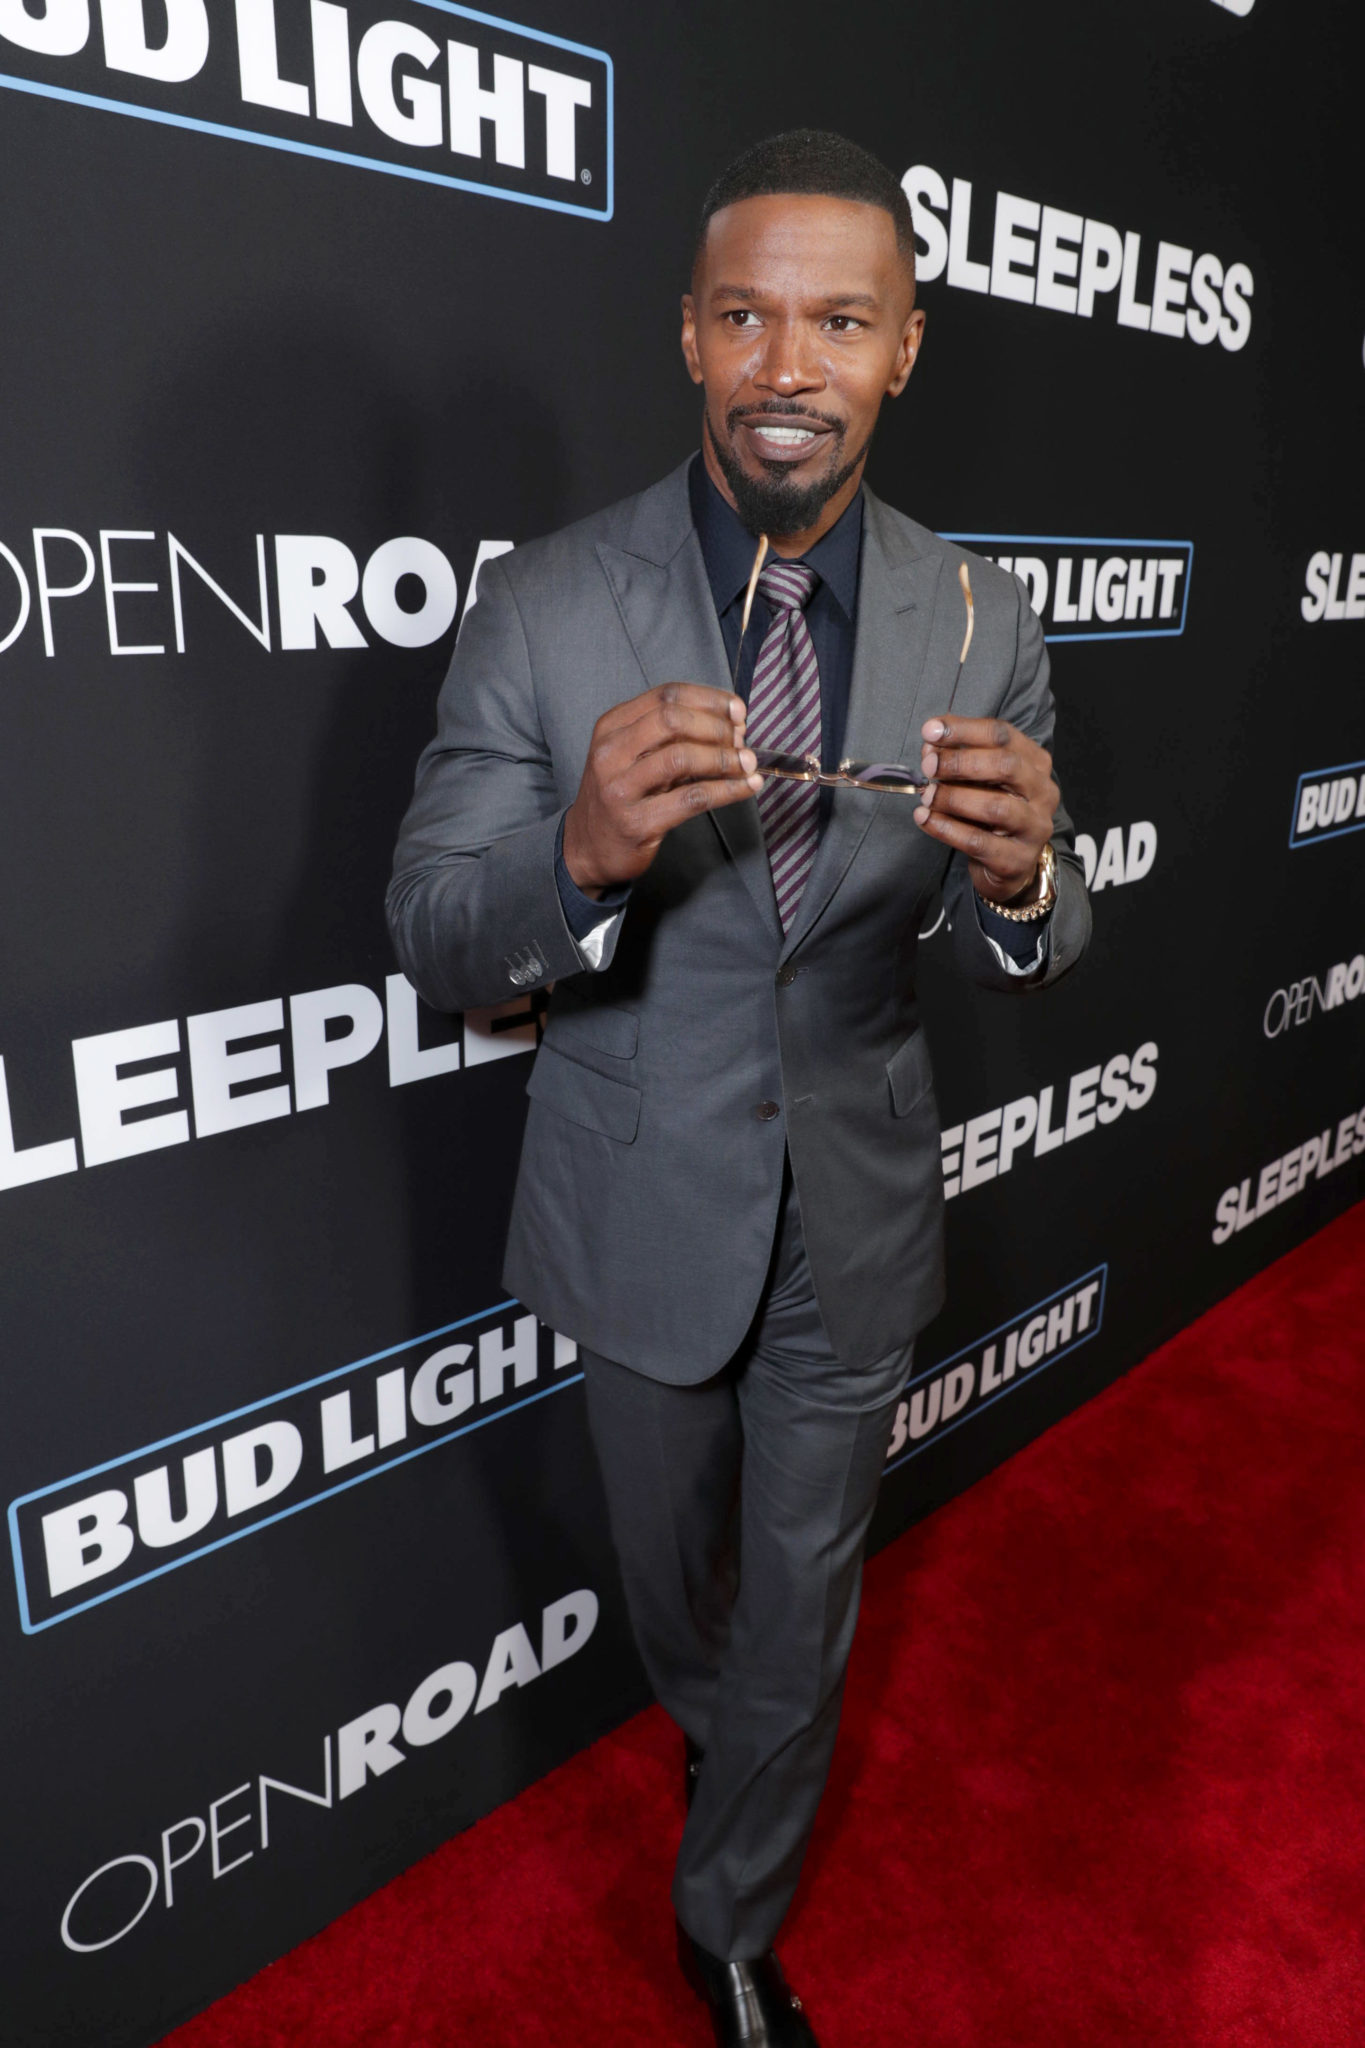 Sleepless Red Carpet Premiere In Hollywood